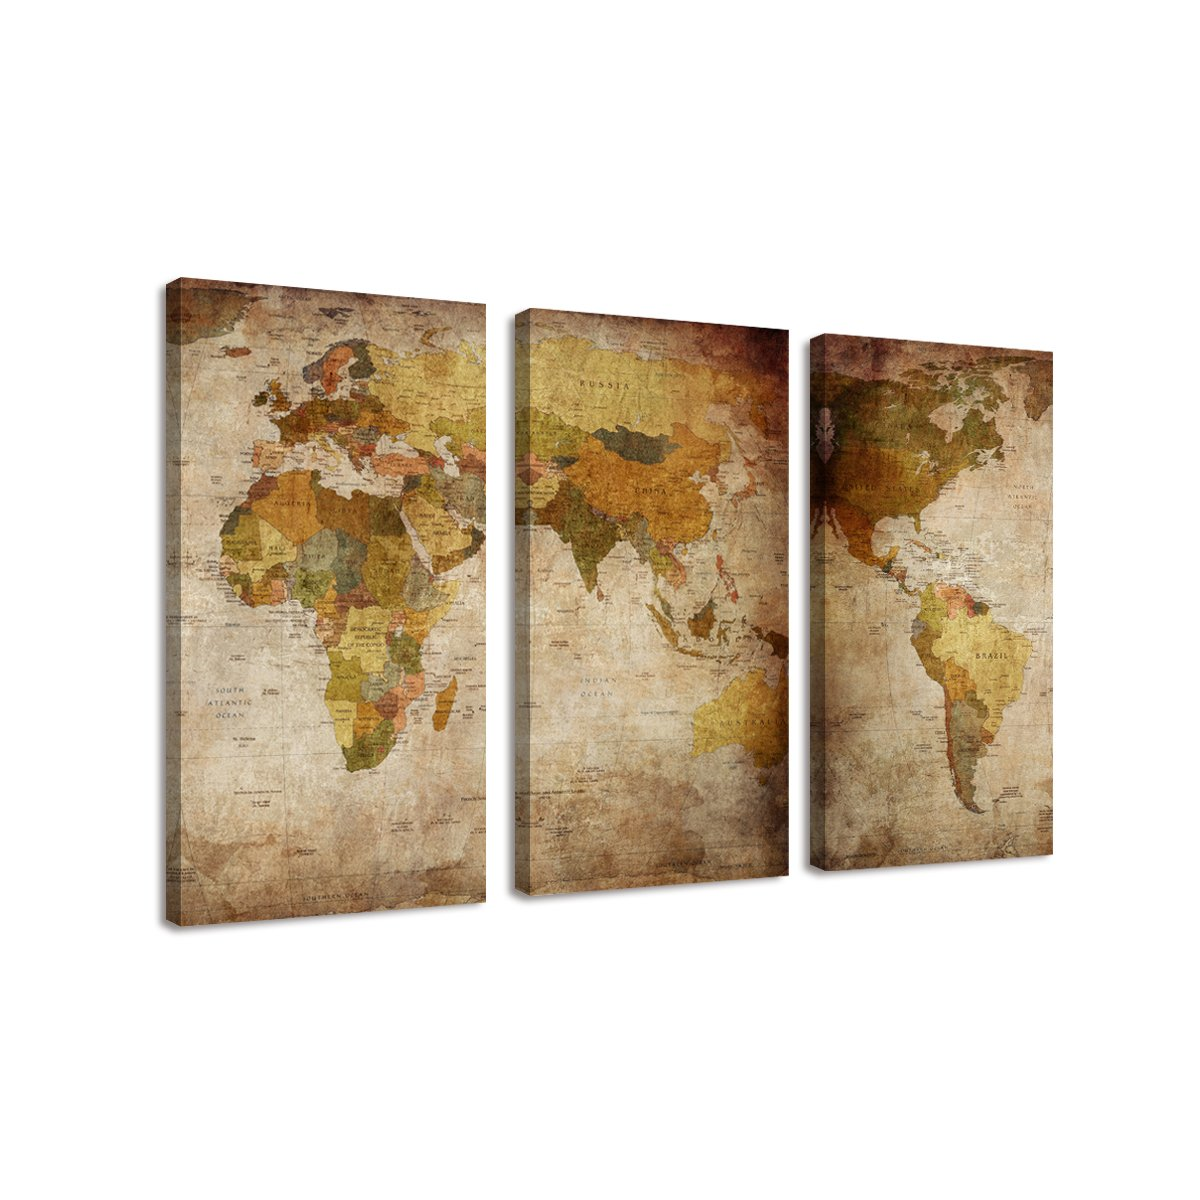 BIL-YOPIN 3 Panels Large Canvas Printing Retro Abstract World Map Wall Art Painting giclee canvas prints for Home Decor …